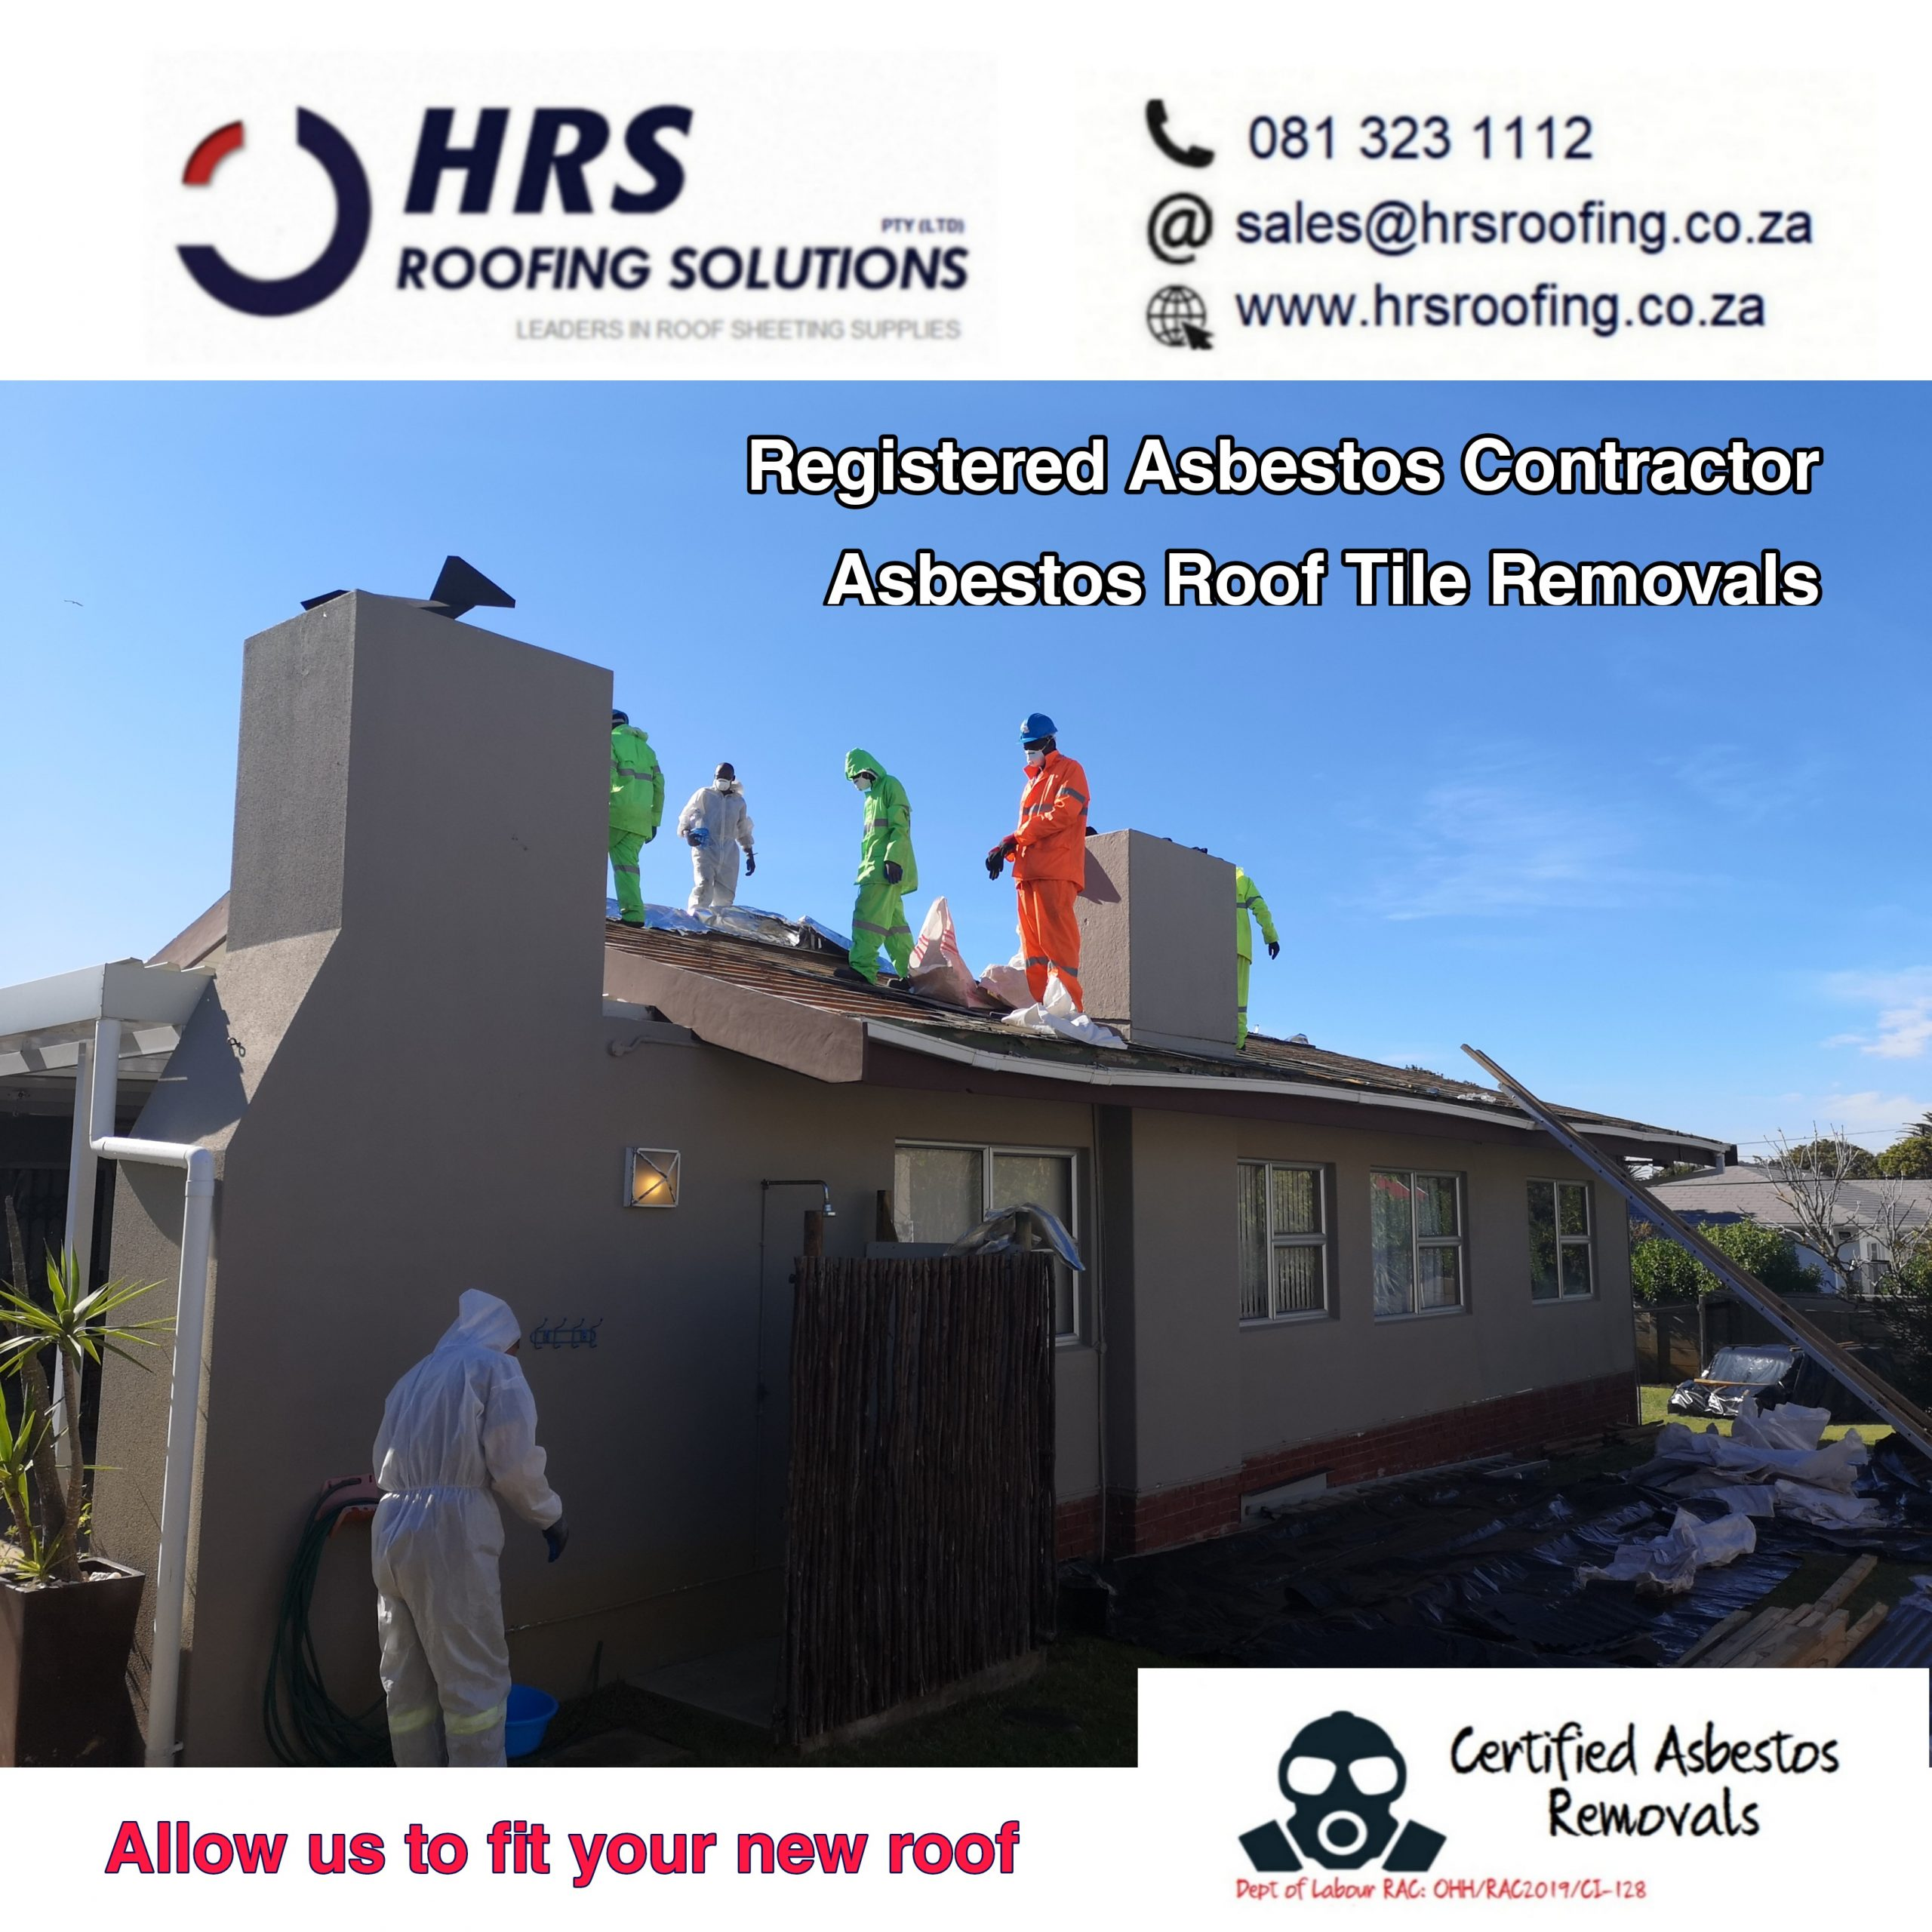 hrs roofing solutions Asbestos roof removals colorbond roof sheet supplier scaled - Roofing Gallery